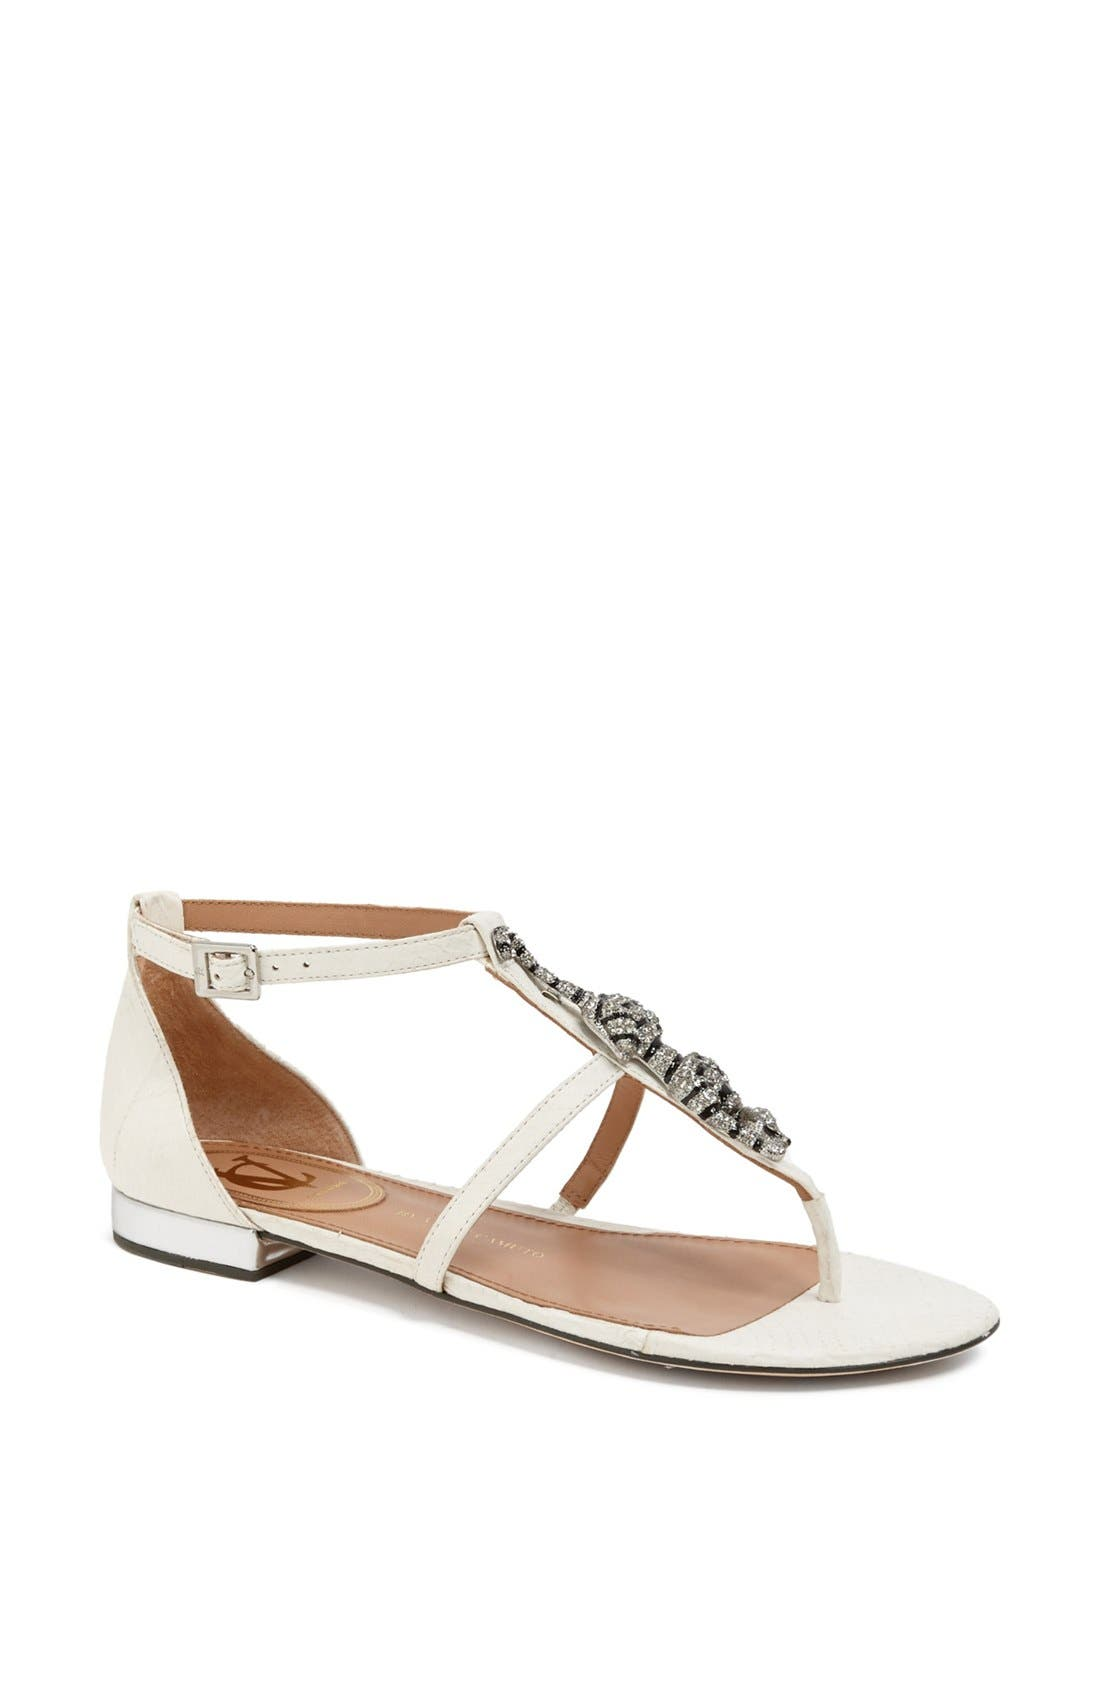 Alternate Image 1 Selected - VC Signature 'Daria' Sandal